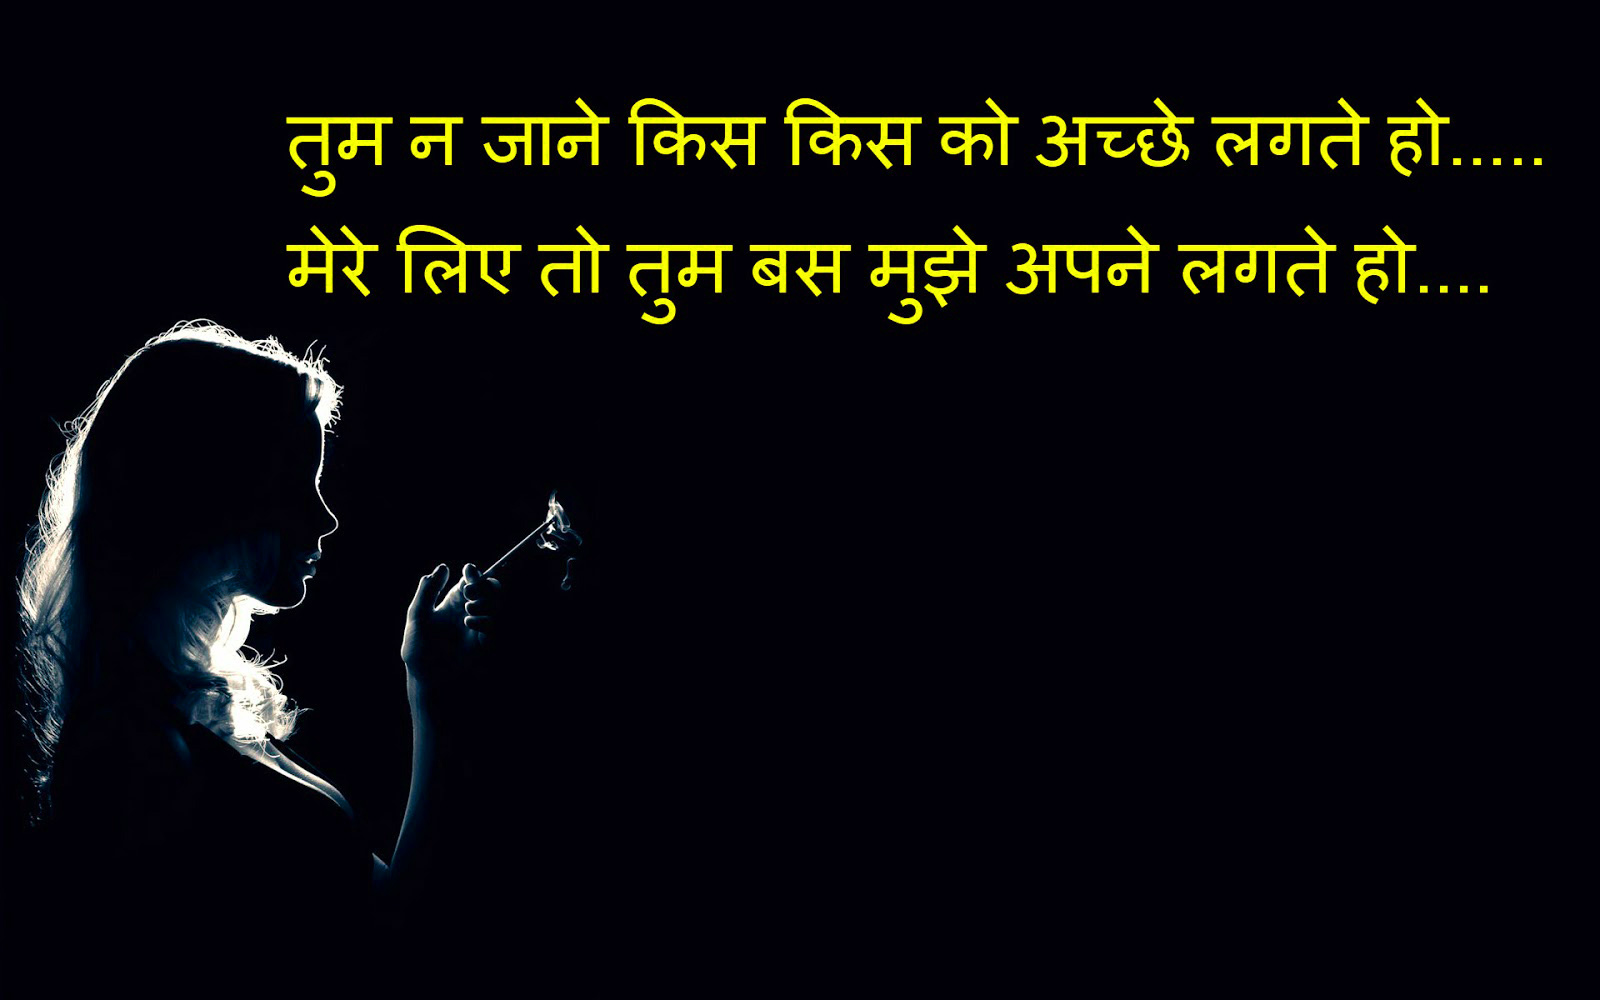 Sad Love Romantic Life Best Hindi Shayari Images Wallpaper Pic for Whatsapp